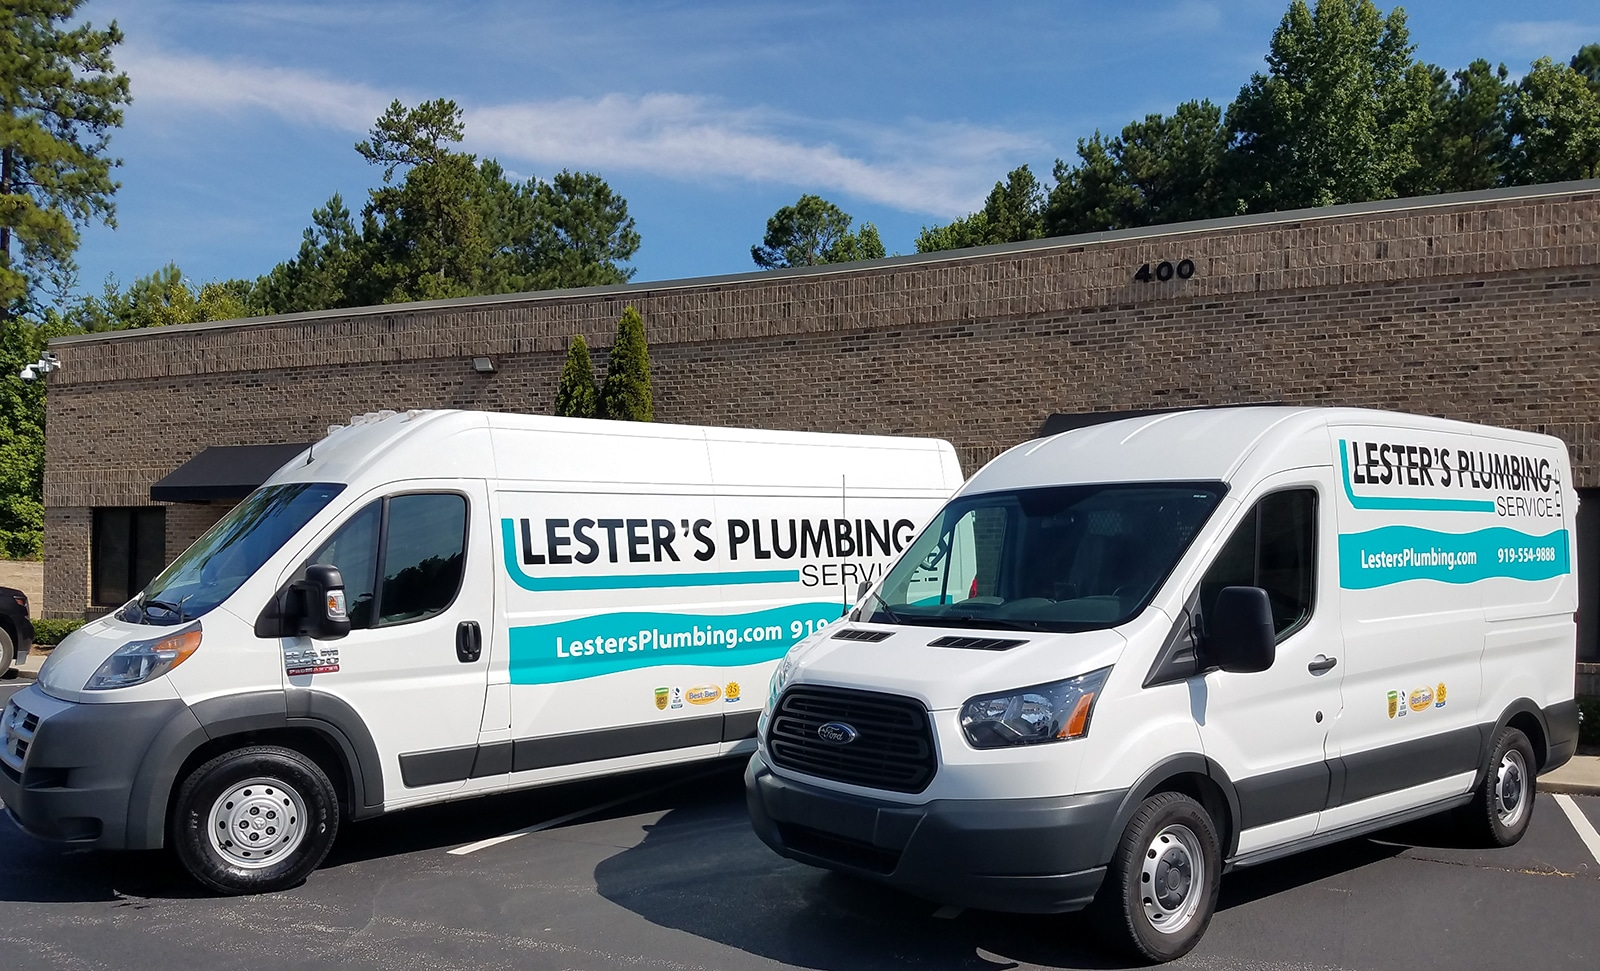 Lester's Plumbing Service - Plumbing Repair Services - Locate a Plumber Near Me - Wake Forest, Wakefield, Youngsville, North Raleigh, Rolesville, Louisburg, Franklinton, Knightdale, Zebulon, Creedmoor, and Bunn